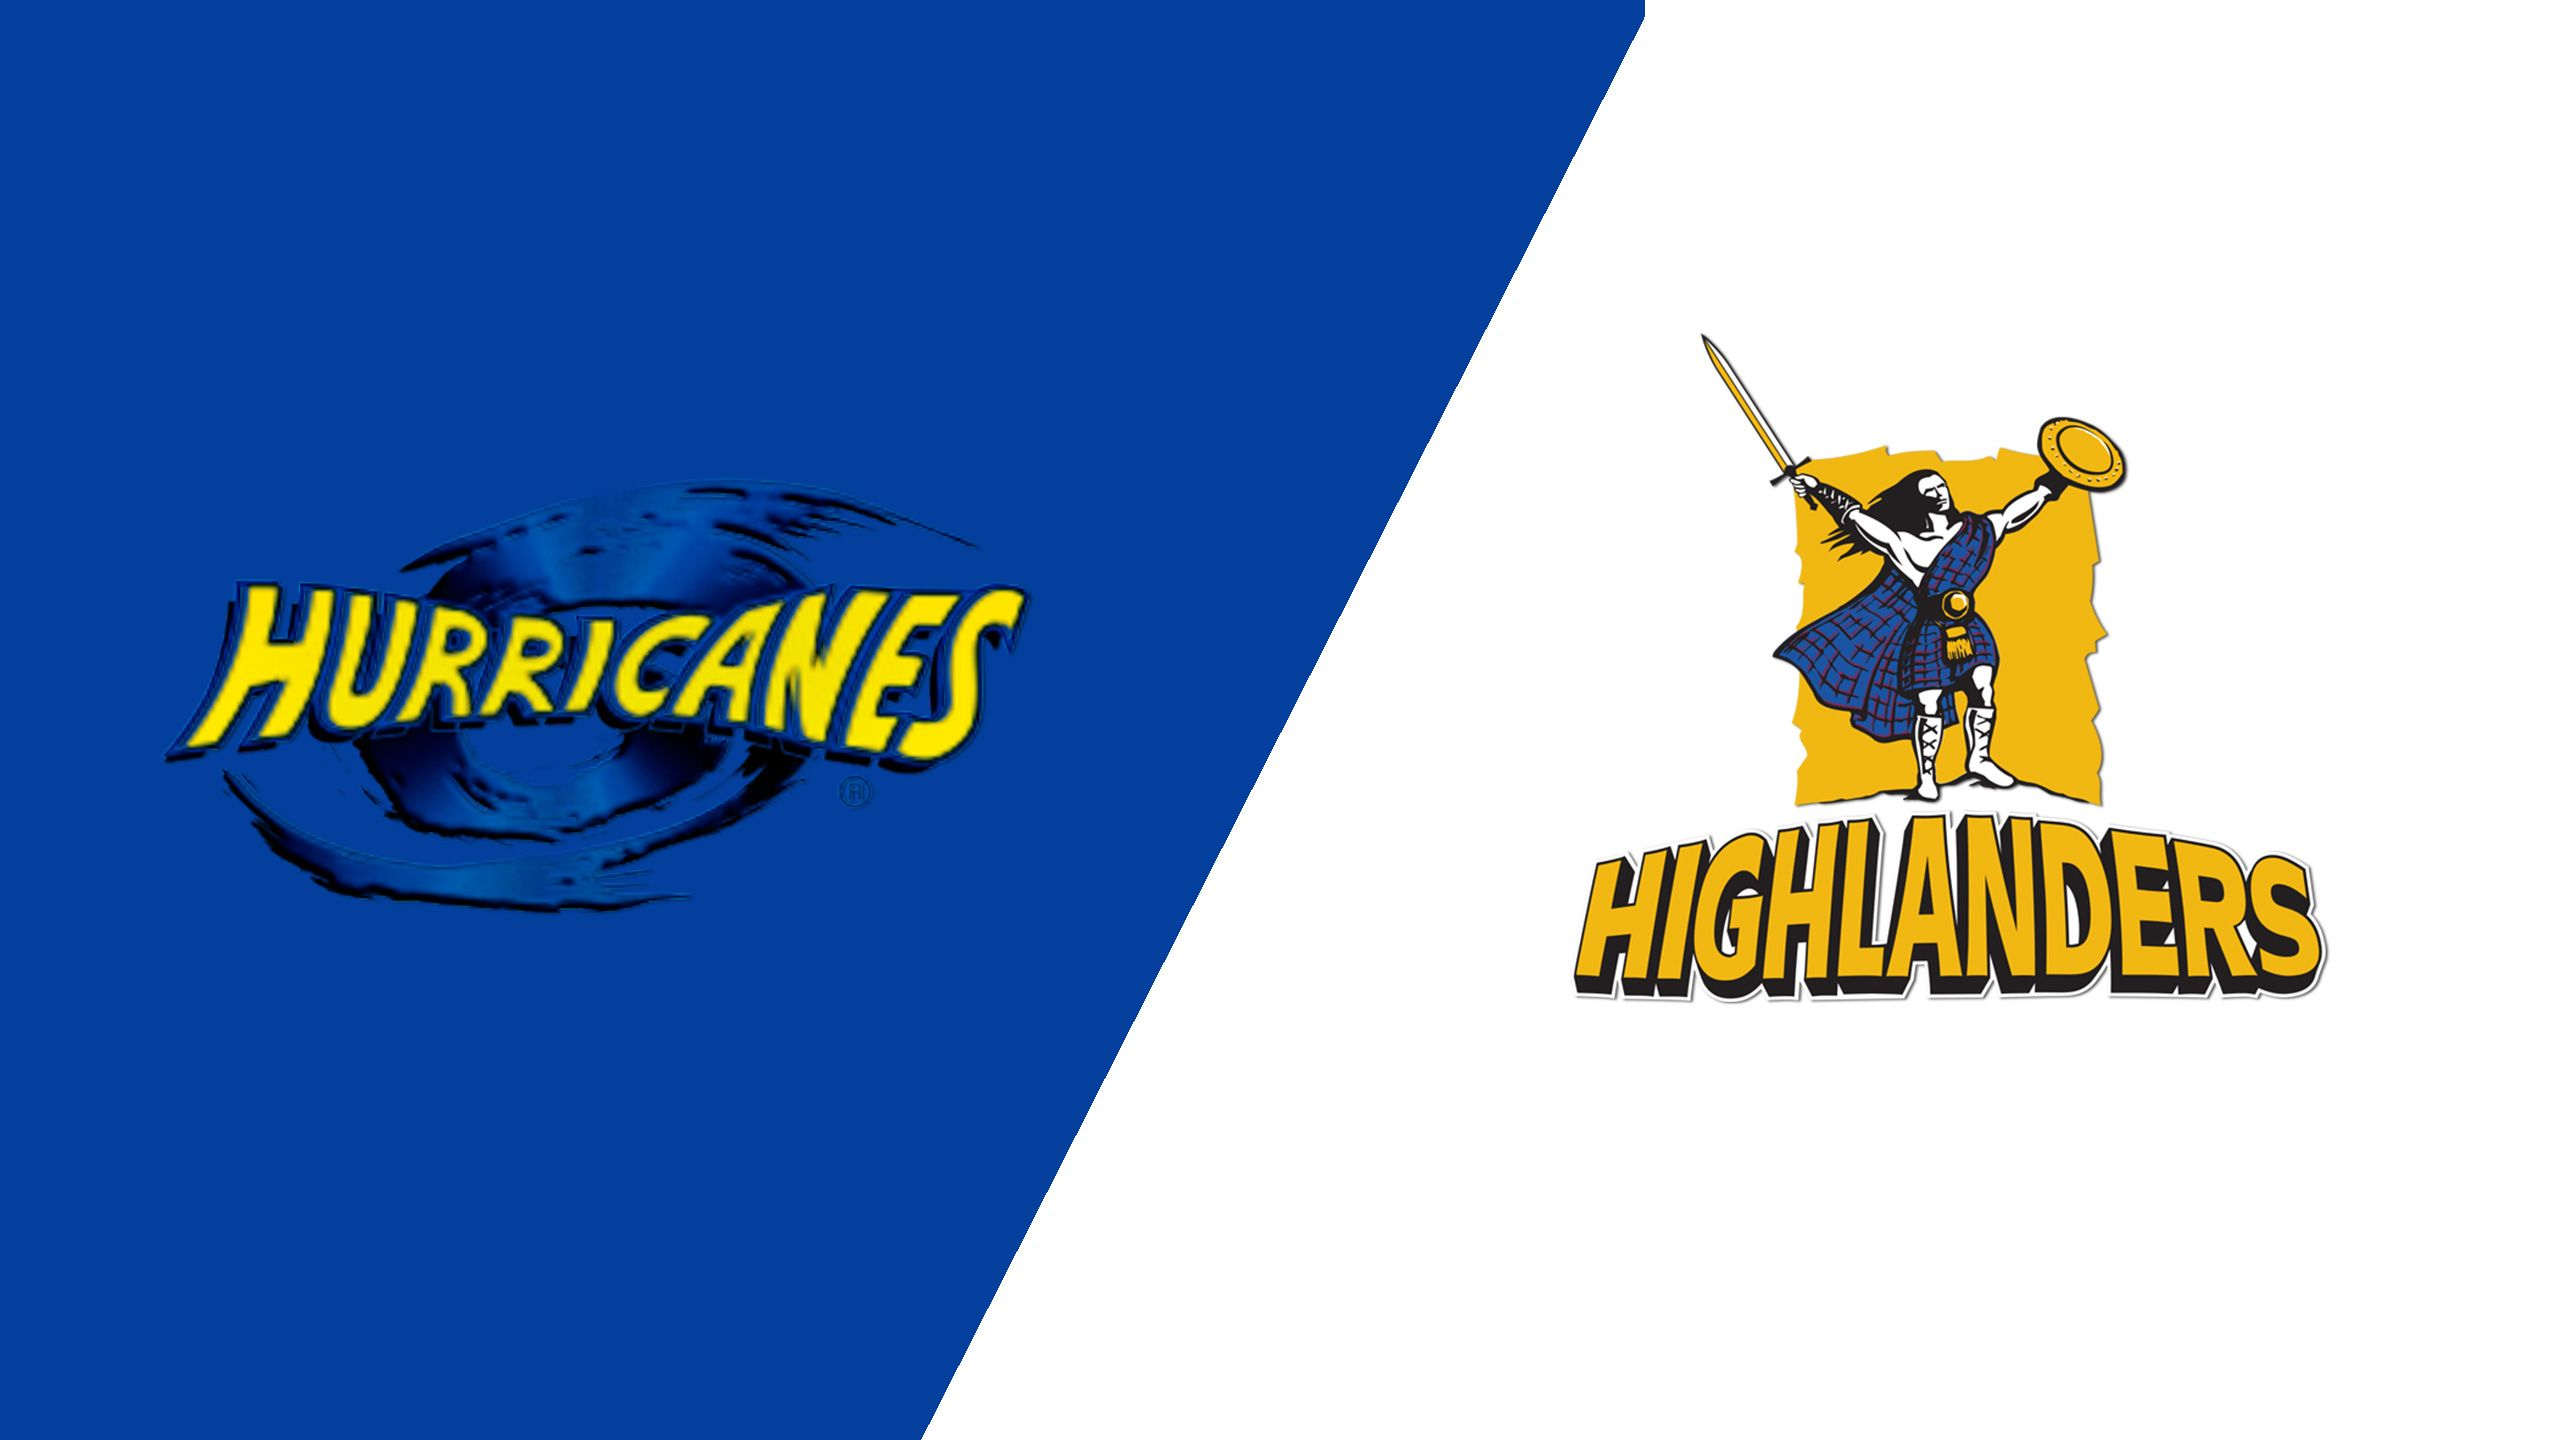 Hurricanes vs. Highlanders (Super Rugby)